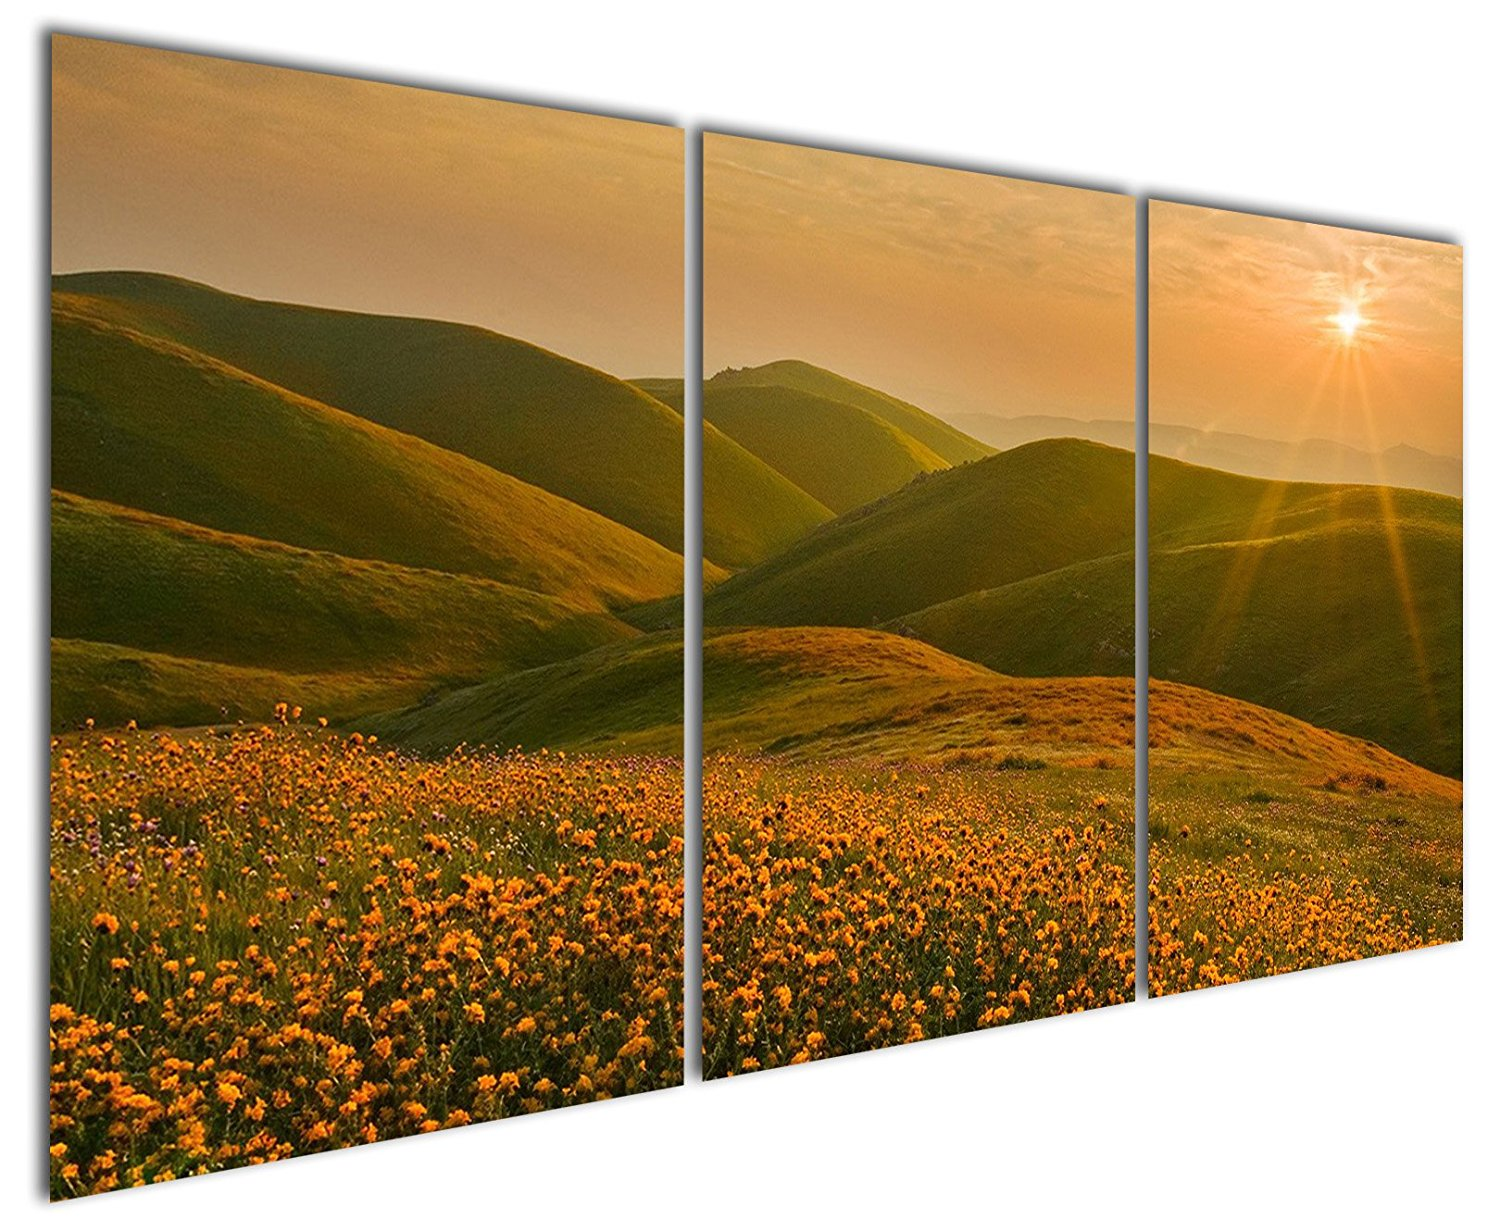 Gardenia Art - Yellow Flowers Daisy on Hillside at Sunrise Canvas Prints Modern Wall Art Paintings Mountain and Grassland Scenery Artwork for Room Decoration,16X24 inch,Stretched and Framed